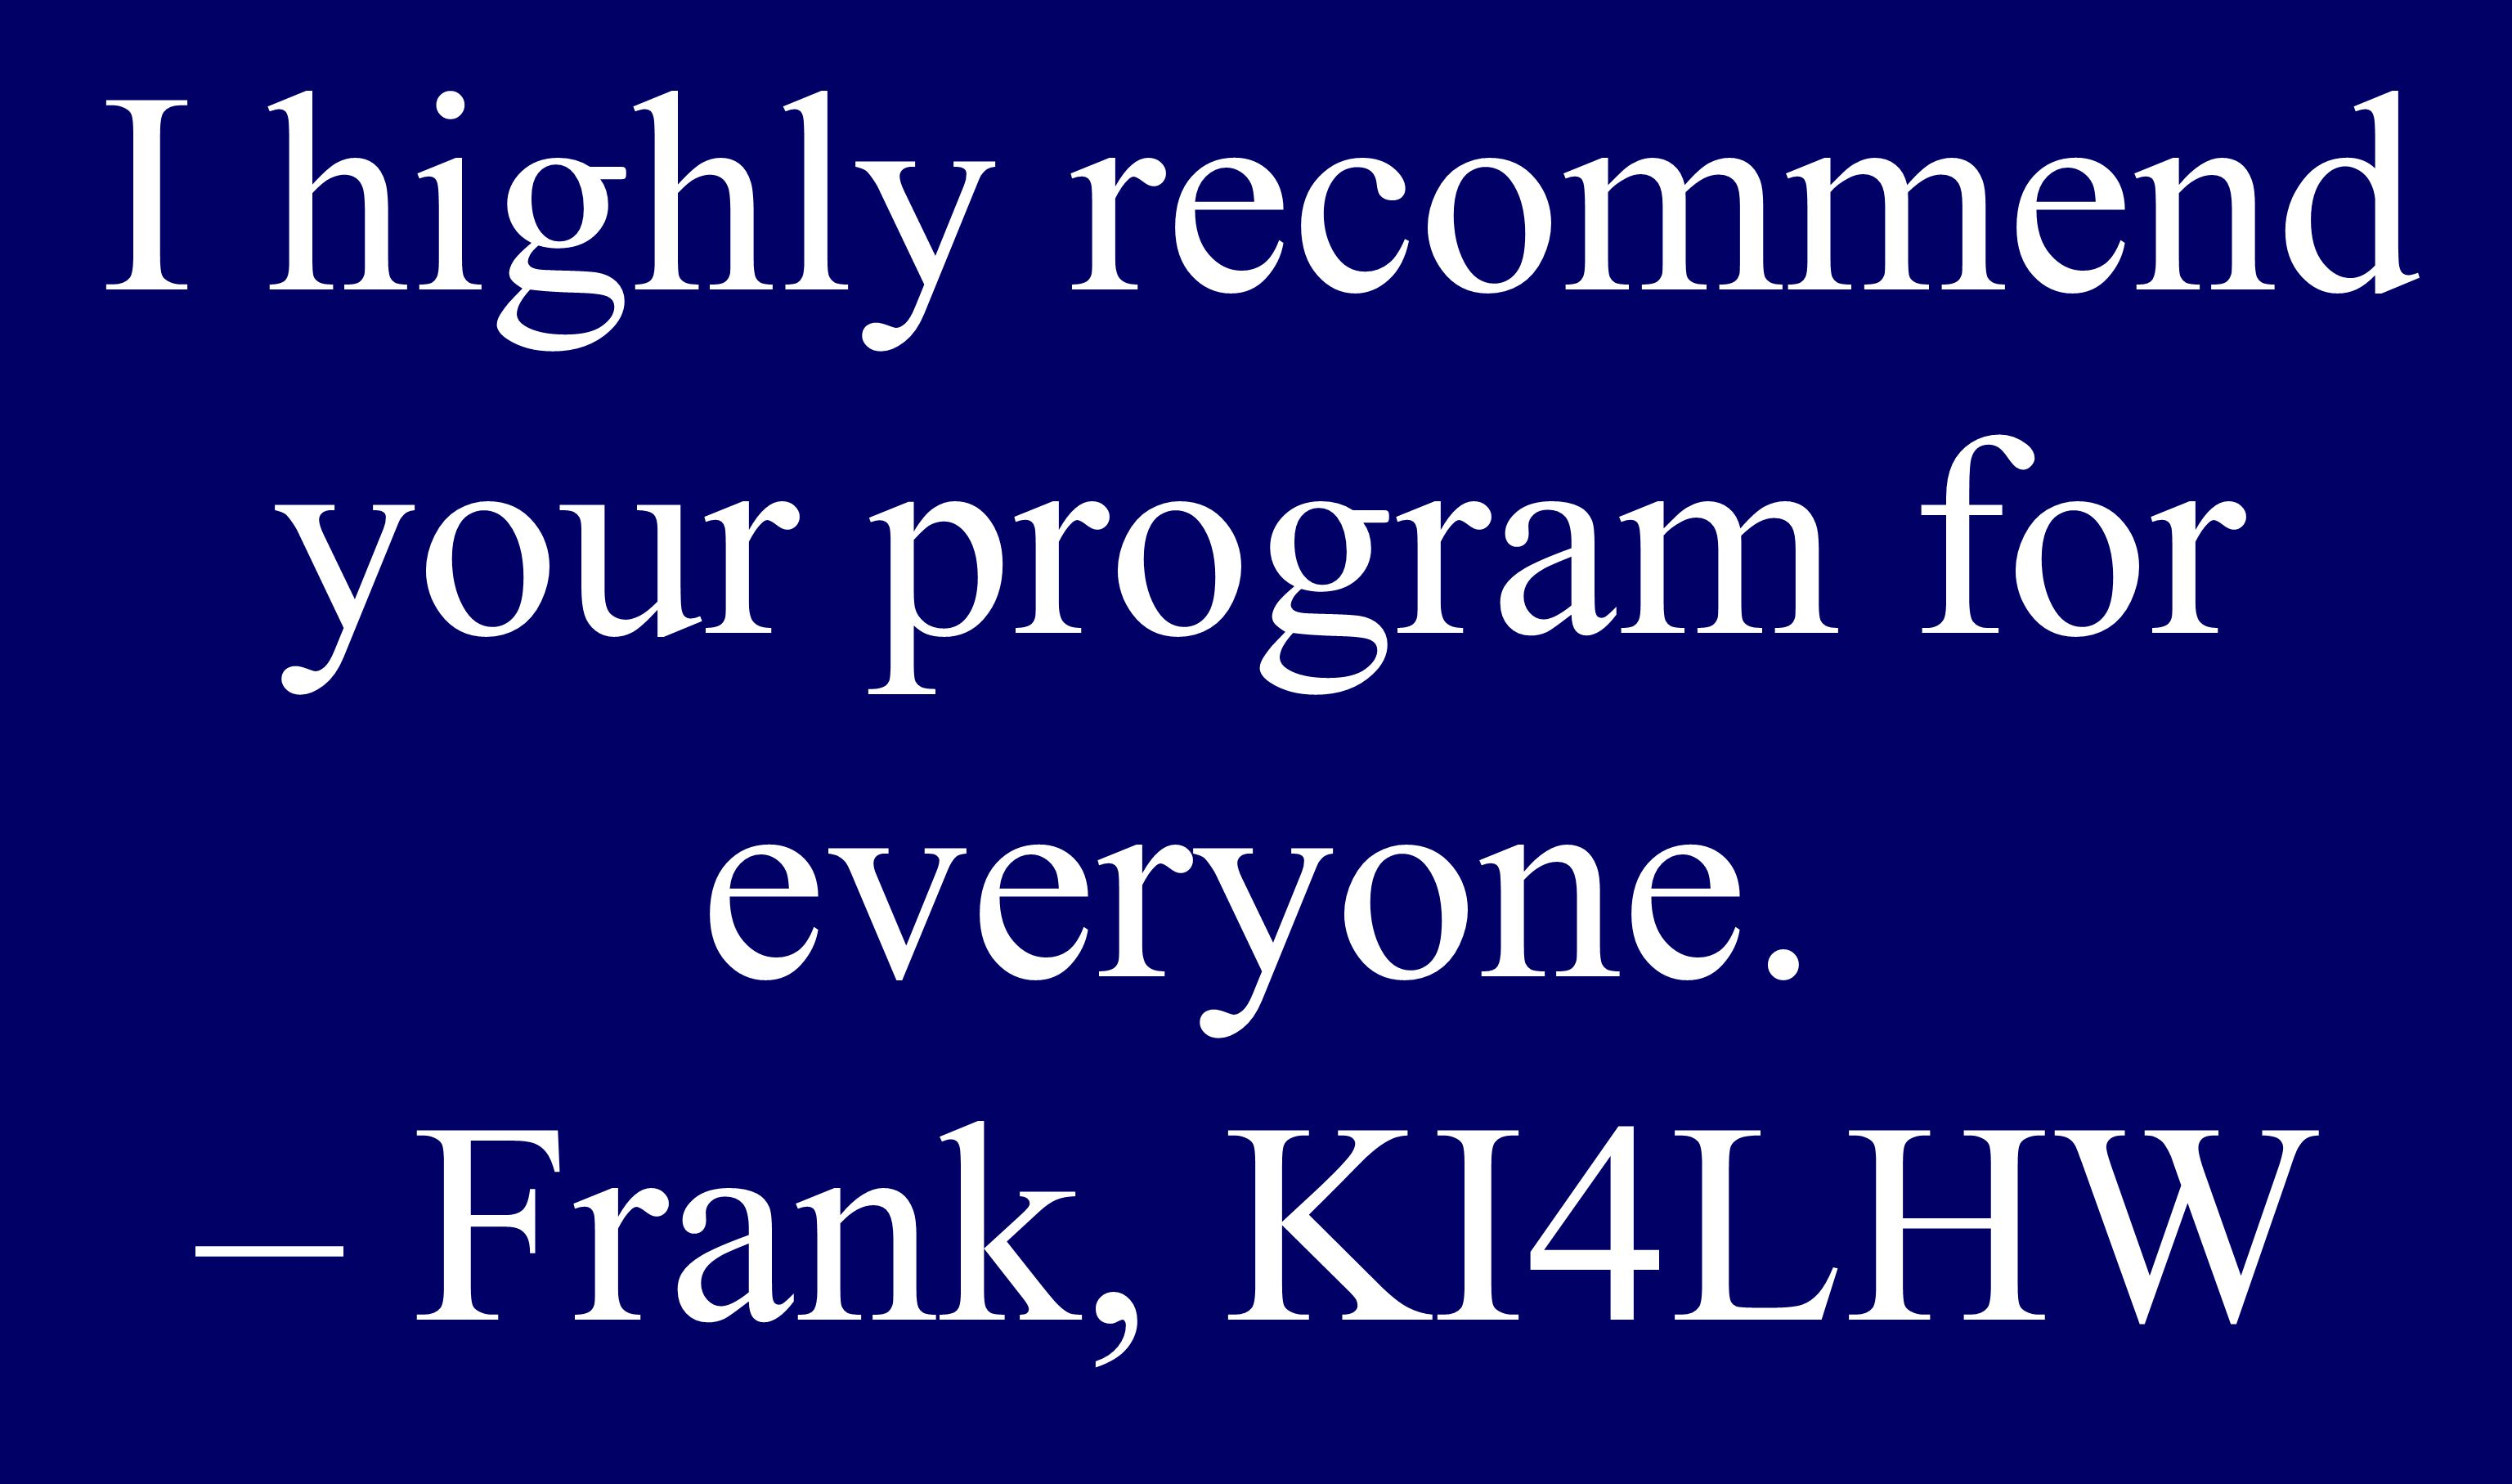 Senior I highly recommend your program for everyone. – Frank, KI4LHW